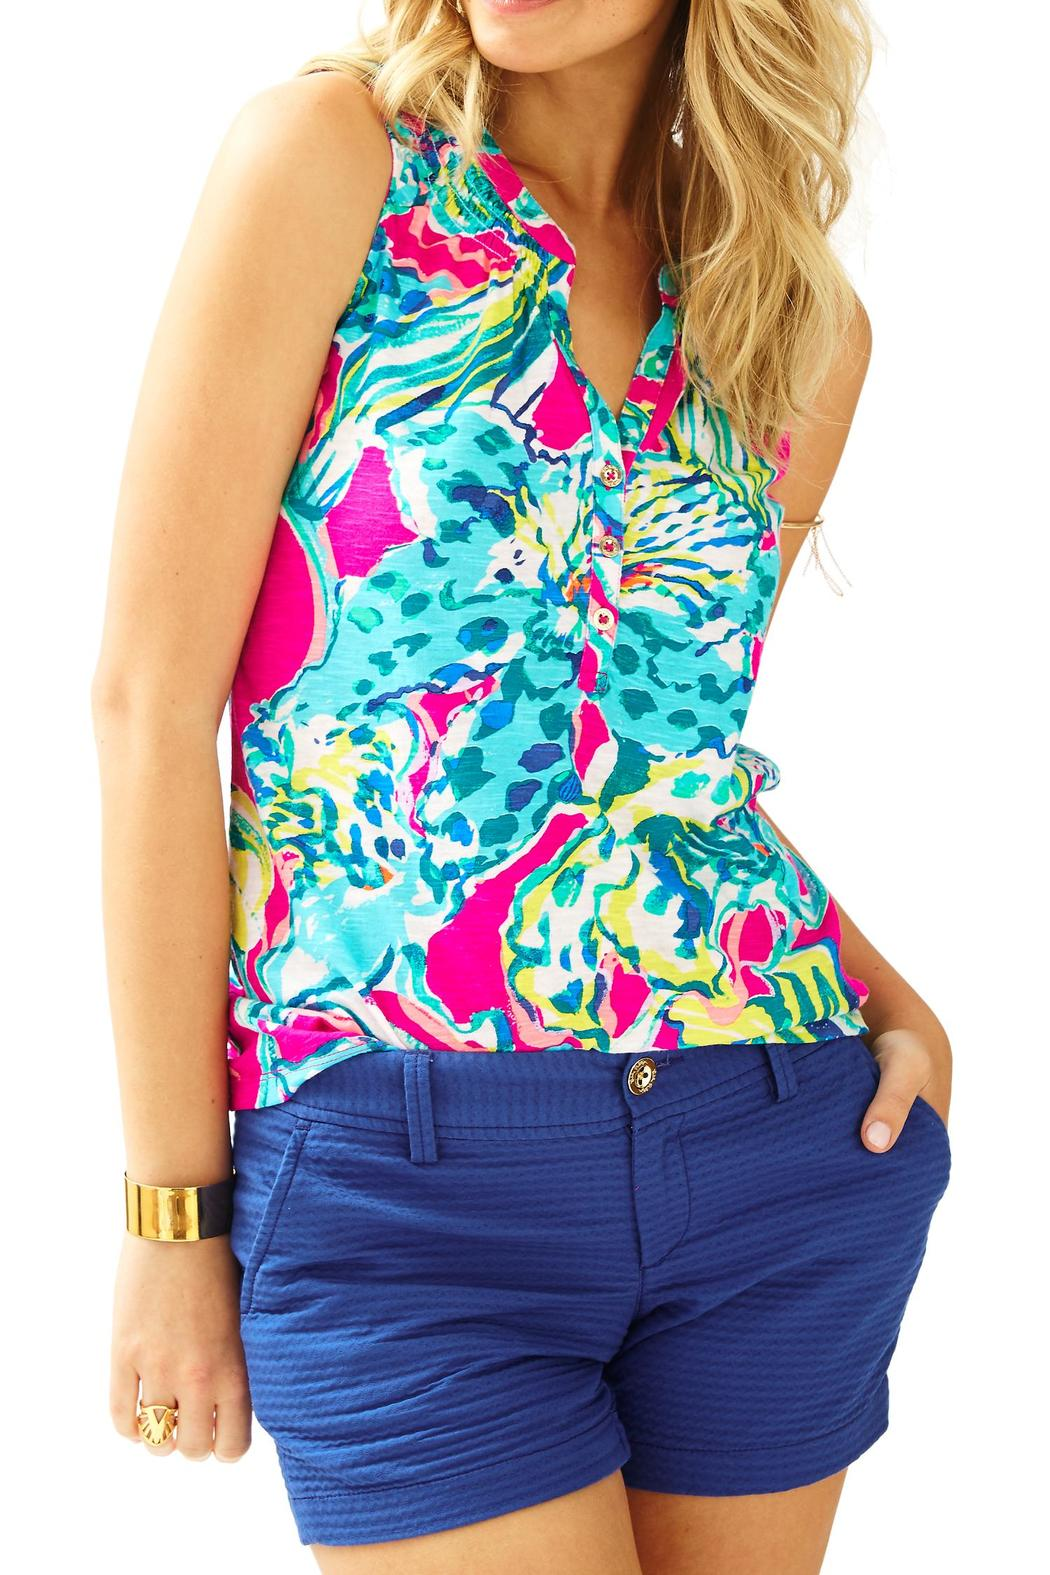 db7b4ceebd933 Lilly Pulitzer Sleeveless Essie Top from Sandestin Golf and Beach ...